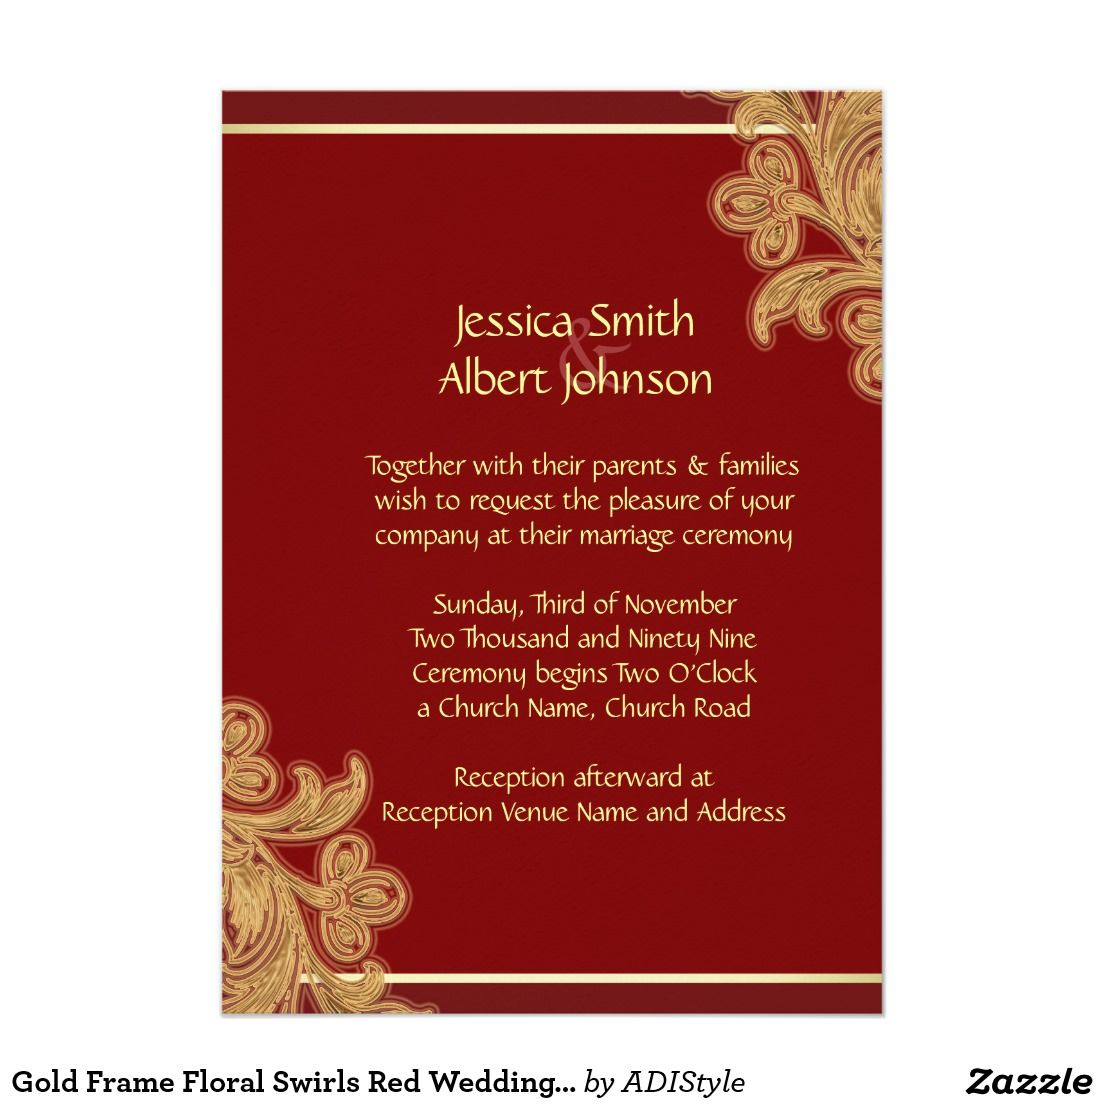 Gold Frame Floral Swirls Red Wedding Invite | Red wedding, Wedding ...